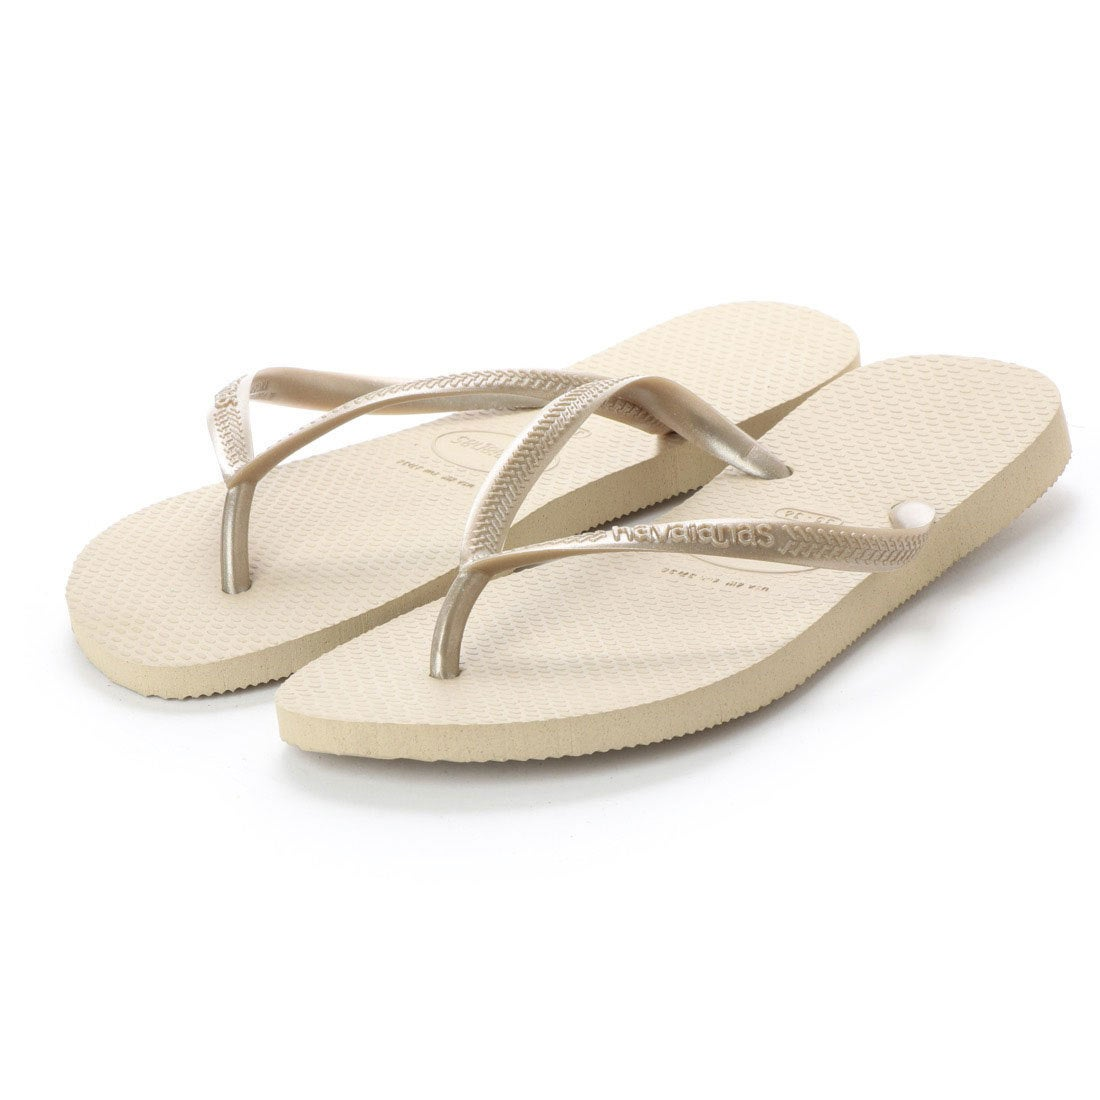 ハワイアナス havaianas SLIM (kids sizes) (sand grey/light golden)